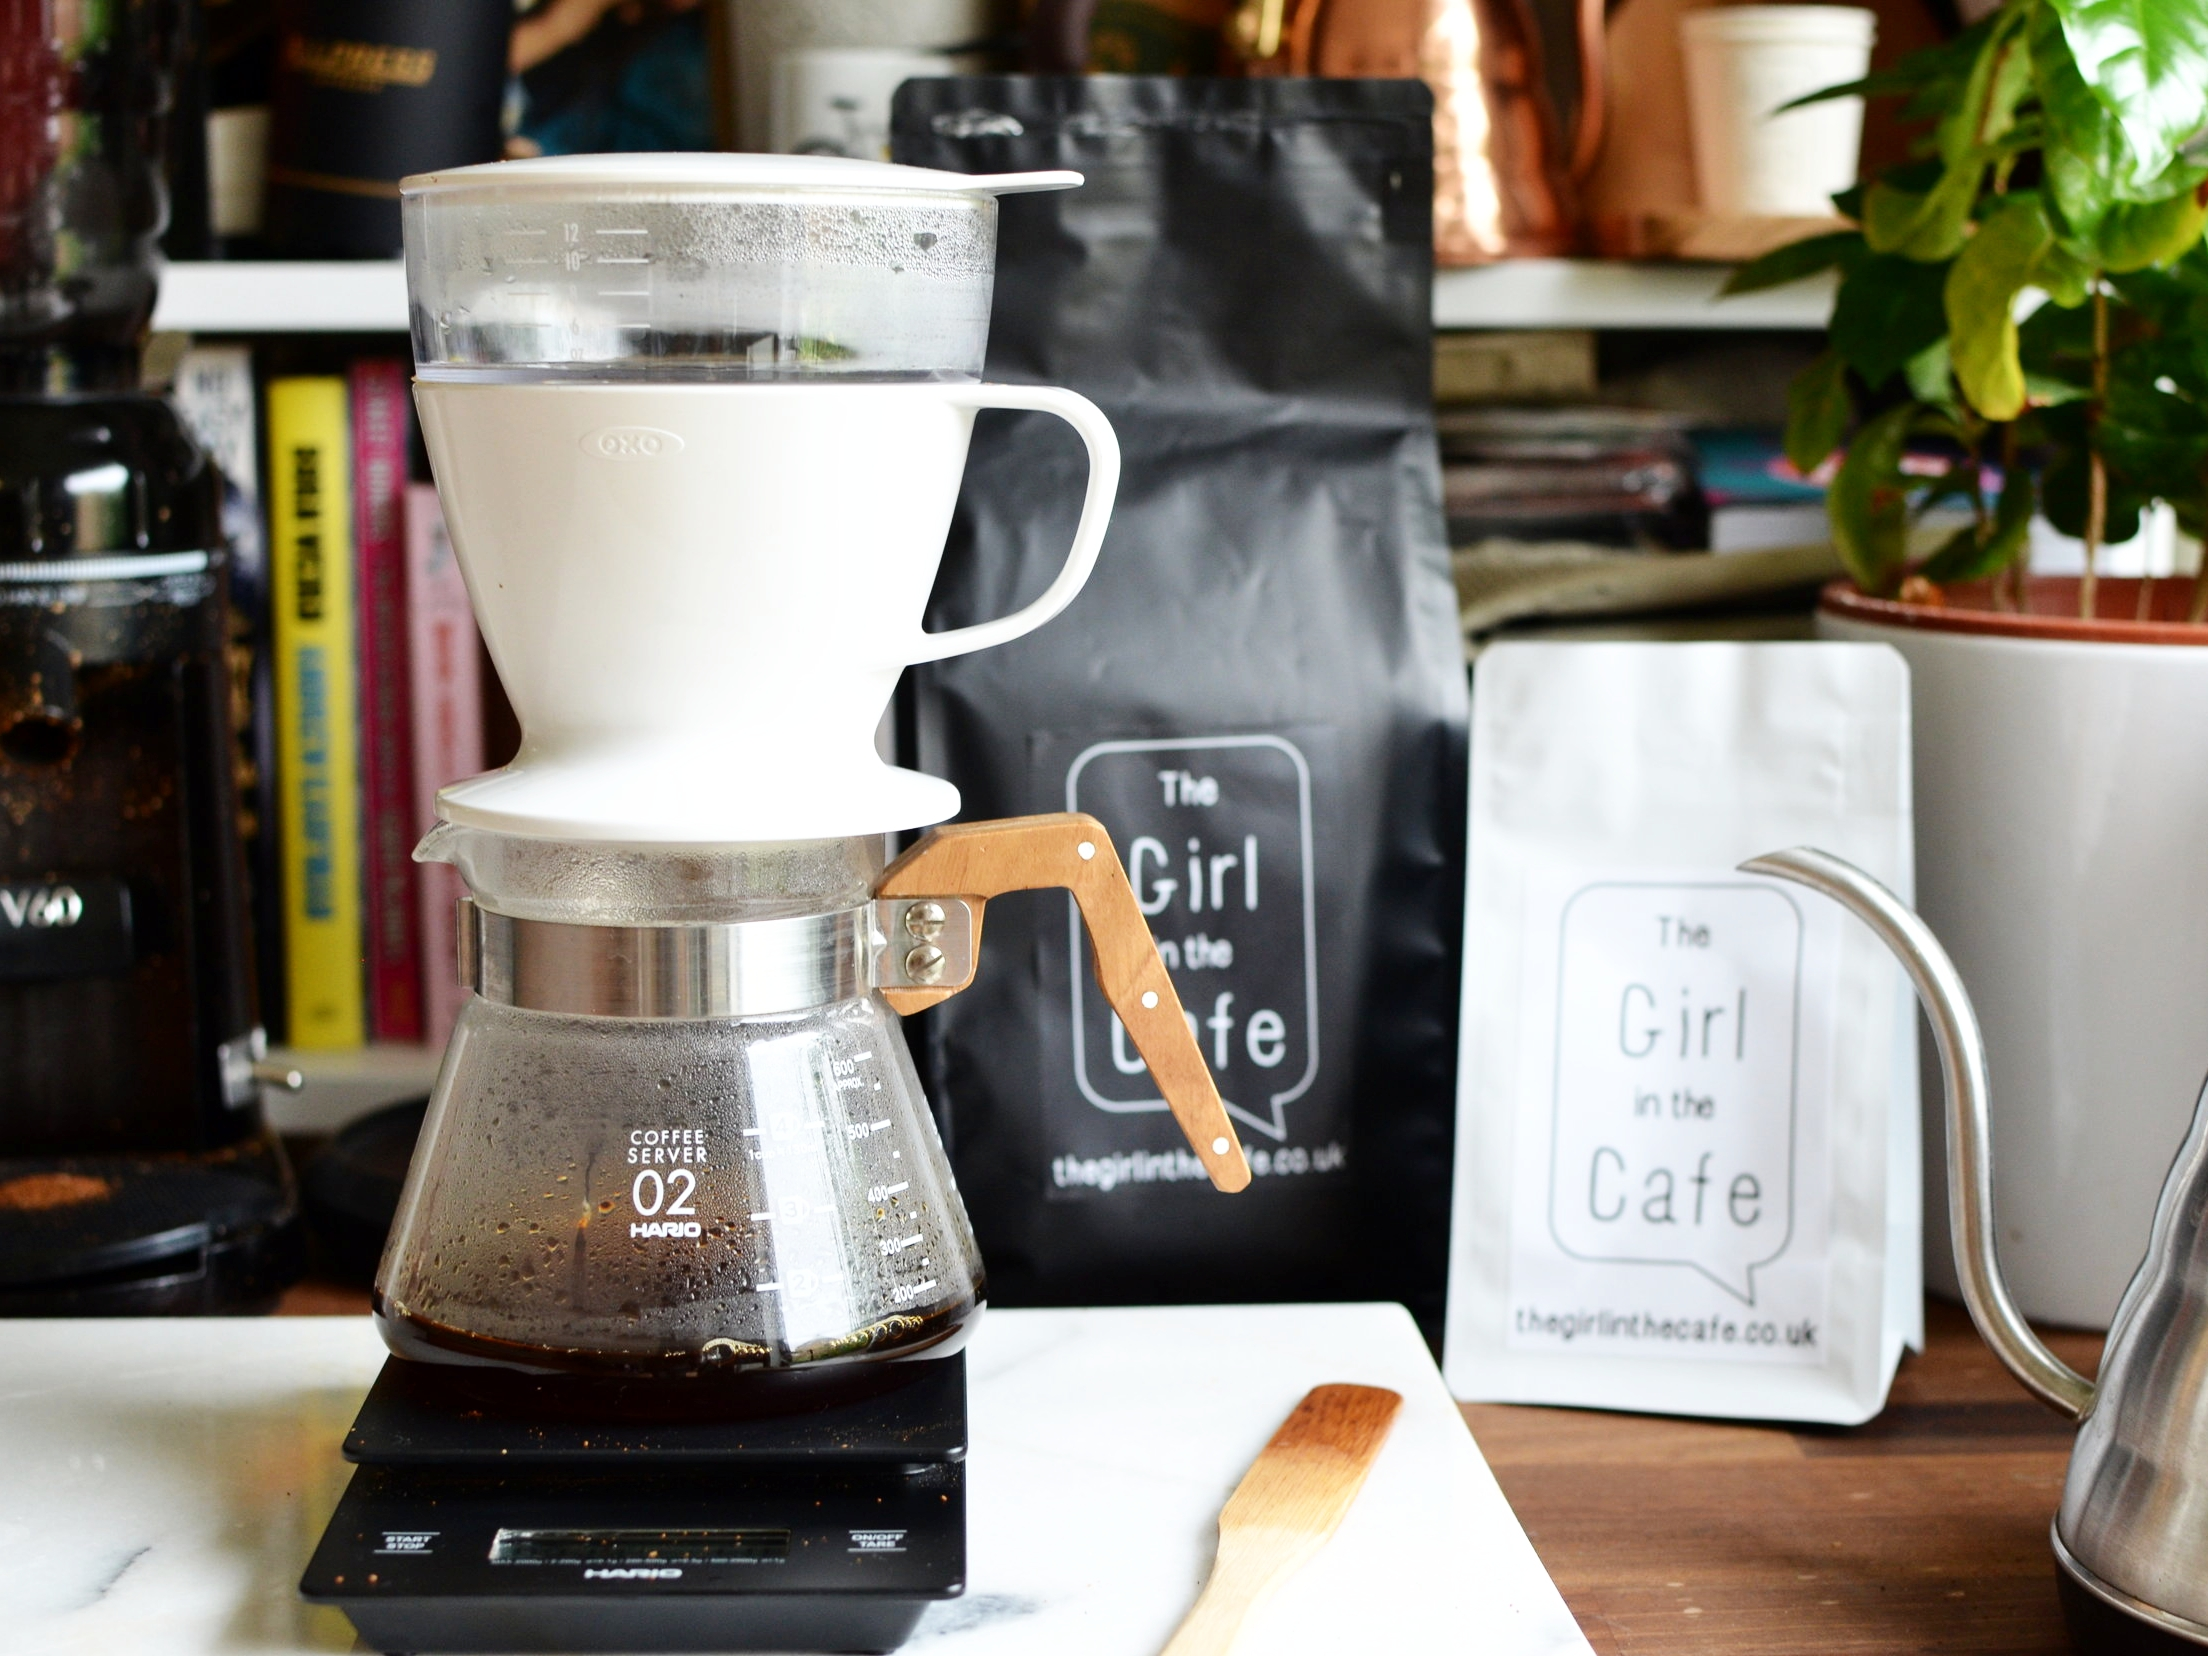 The OXO pour over